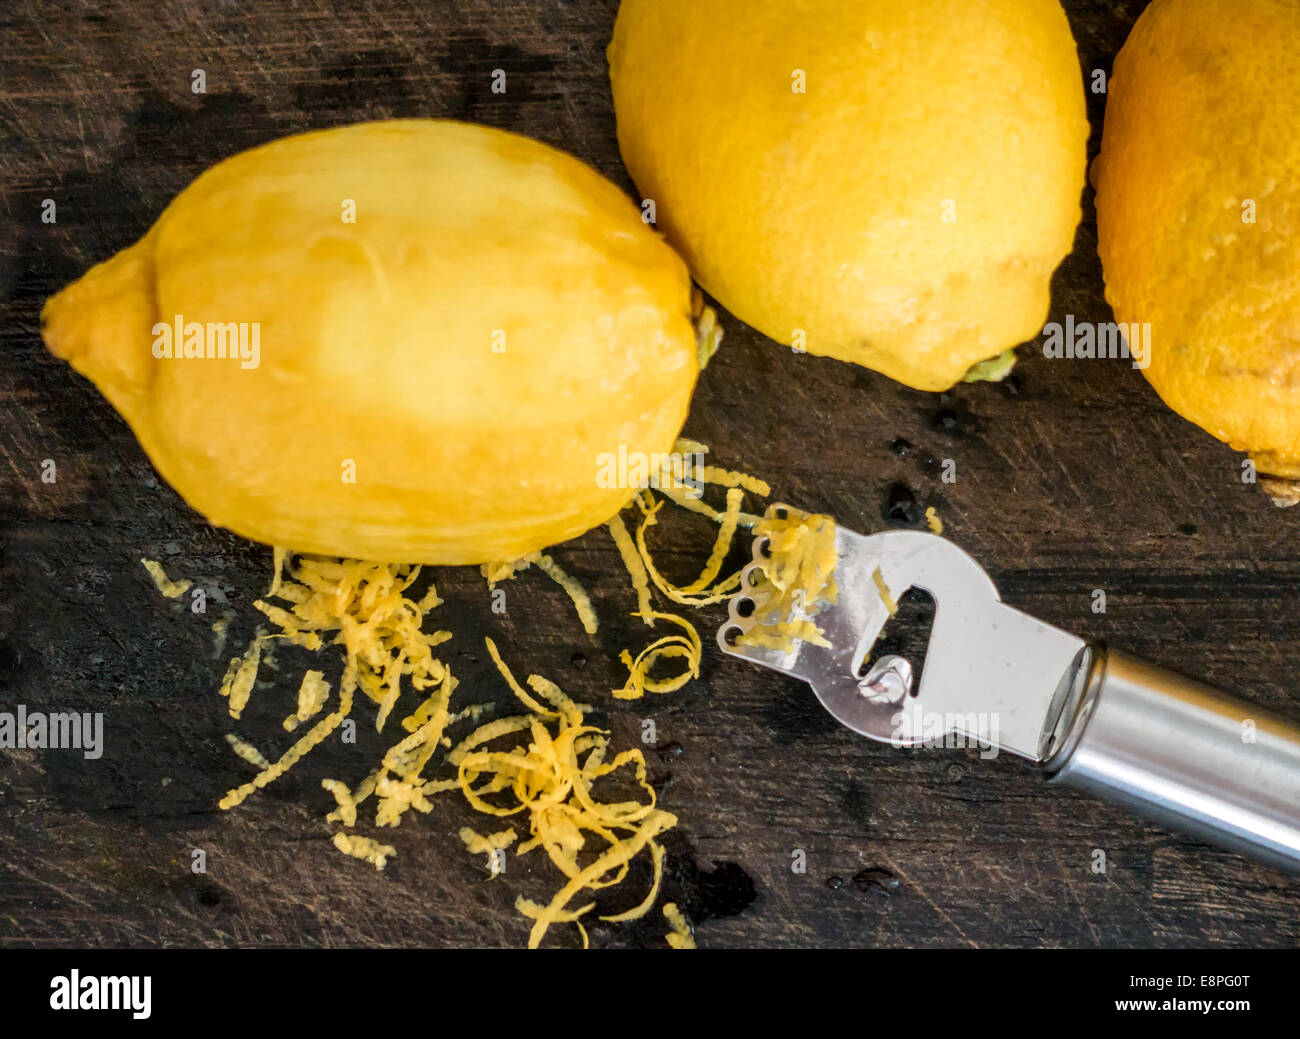 Peeling lemon rind to add zest to cook - Stock Image